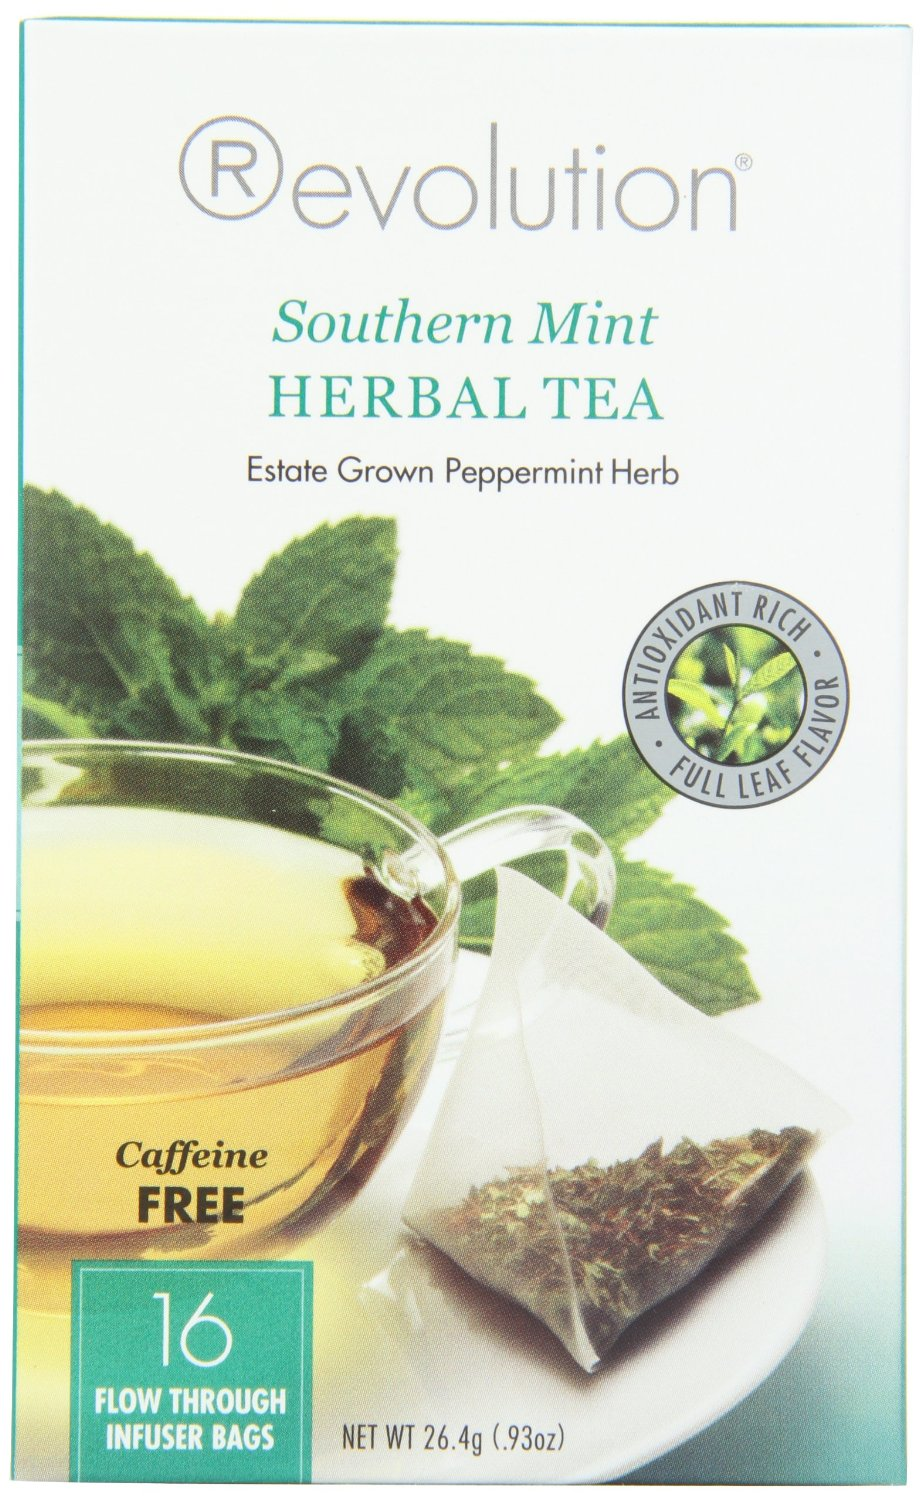 Amazon.com : Revolution Tea Southern Mint Herbal Tea, Caffeine Free, 16-Count Teabags (Pack of 6) : Green Teas